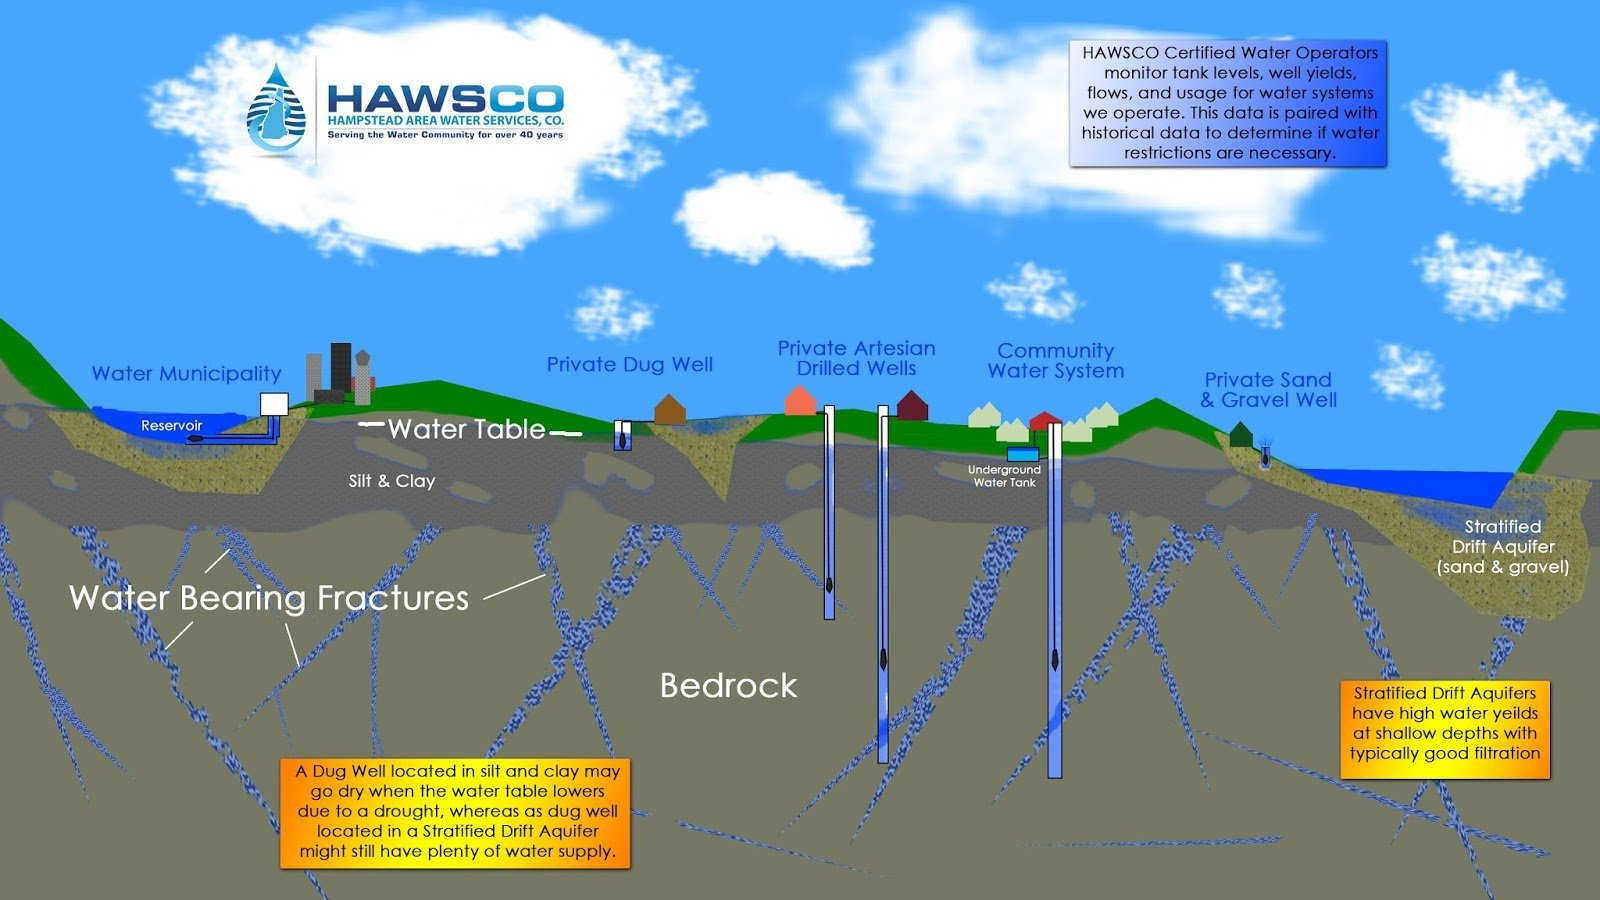 need a system of a water well diagram hampstead area water services  co certified nh water operator  hampstead area water services  co